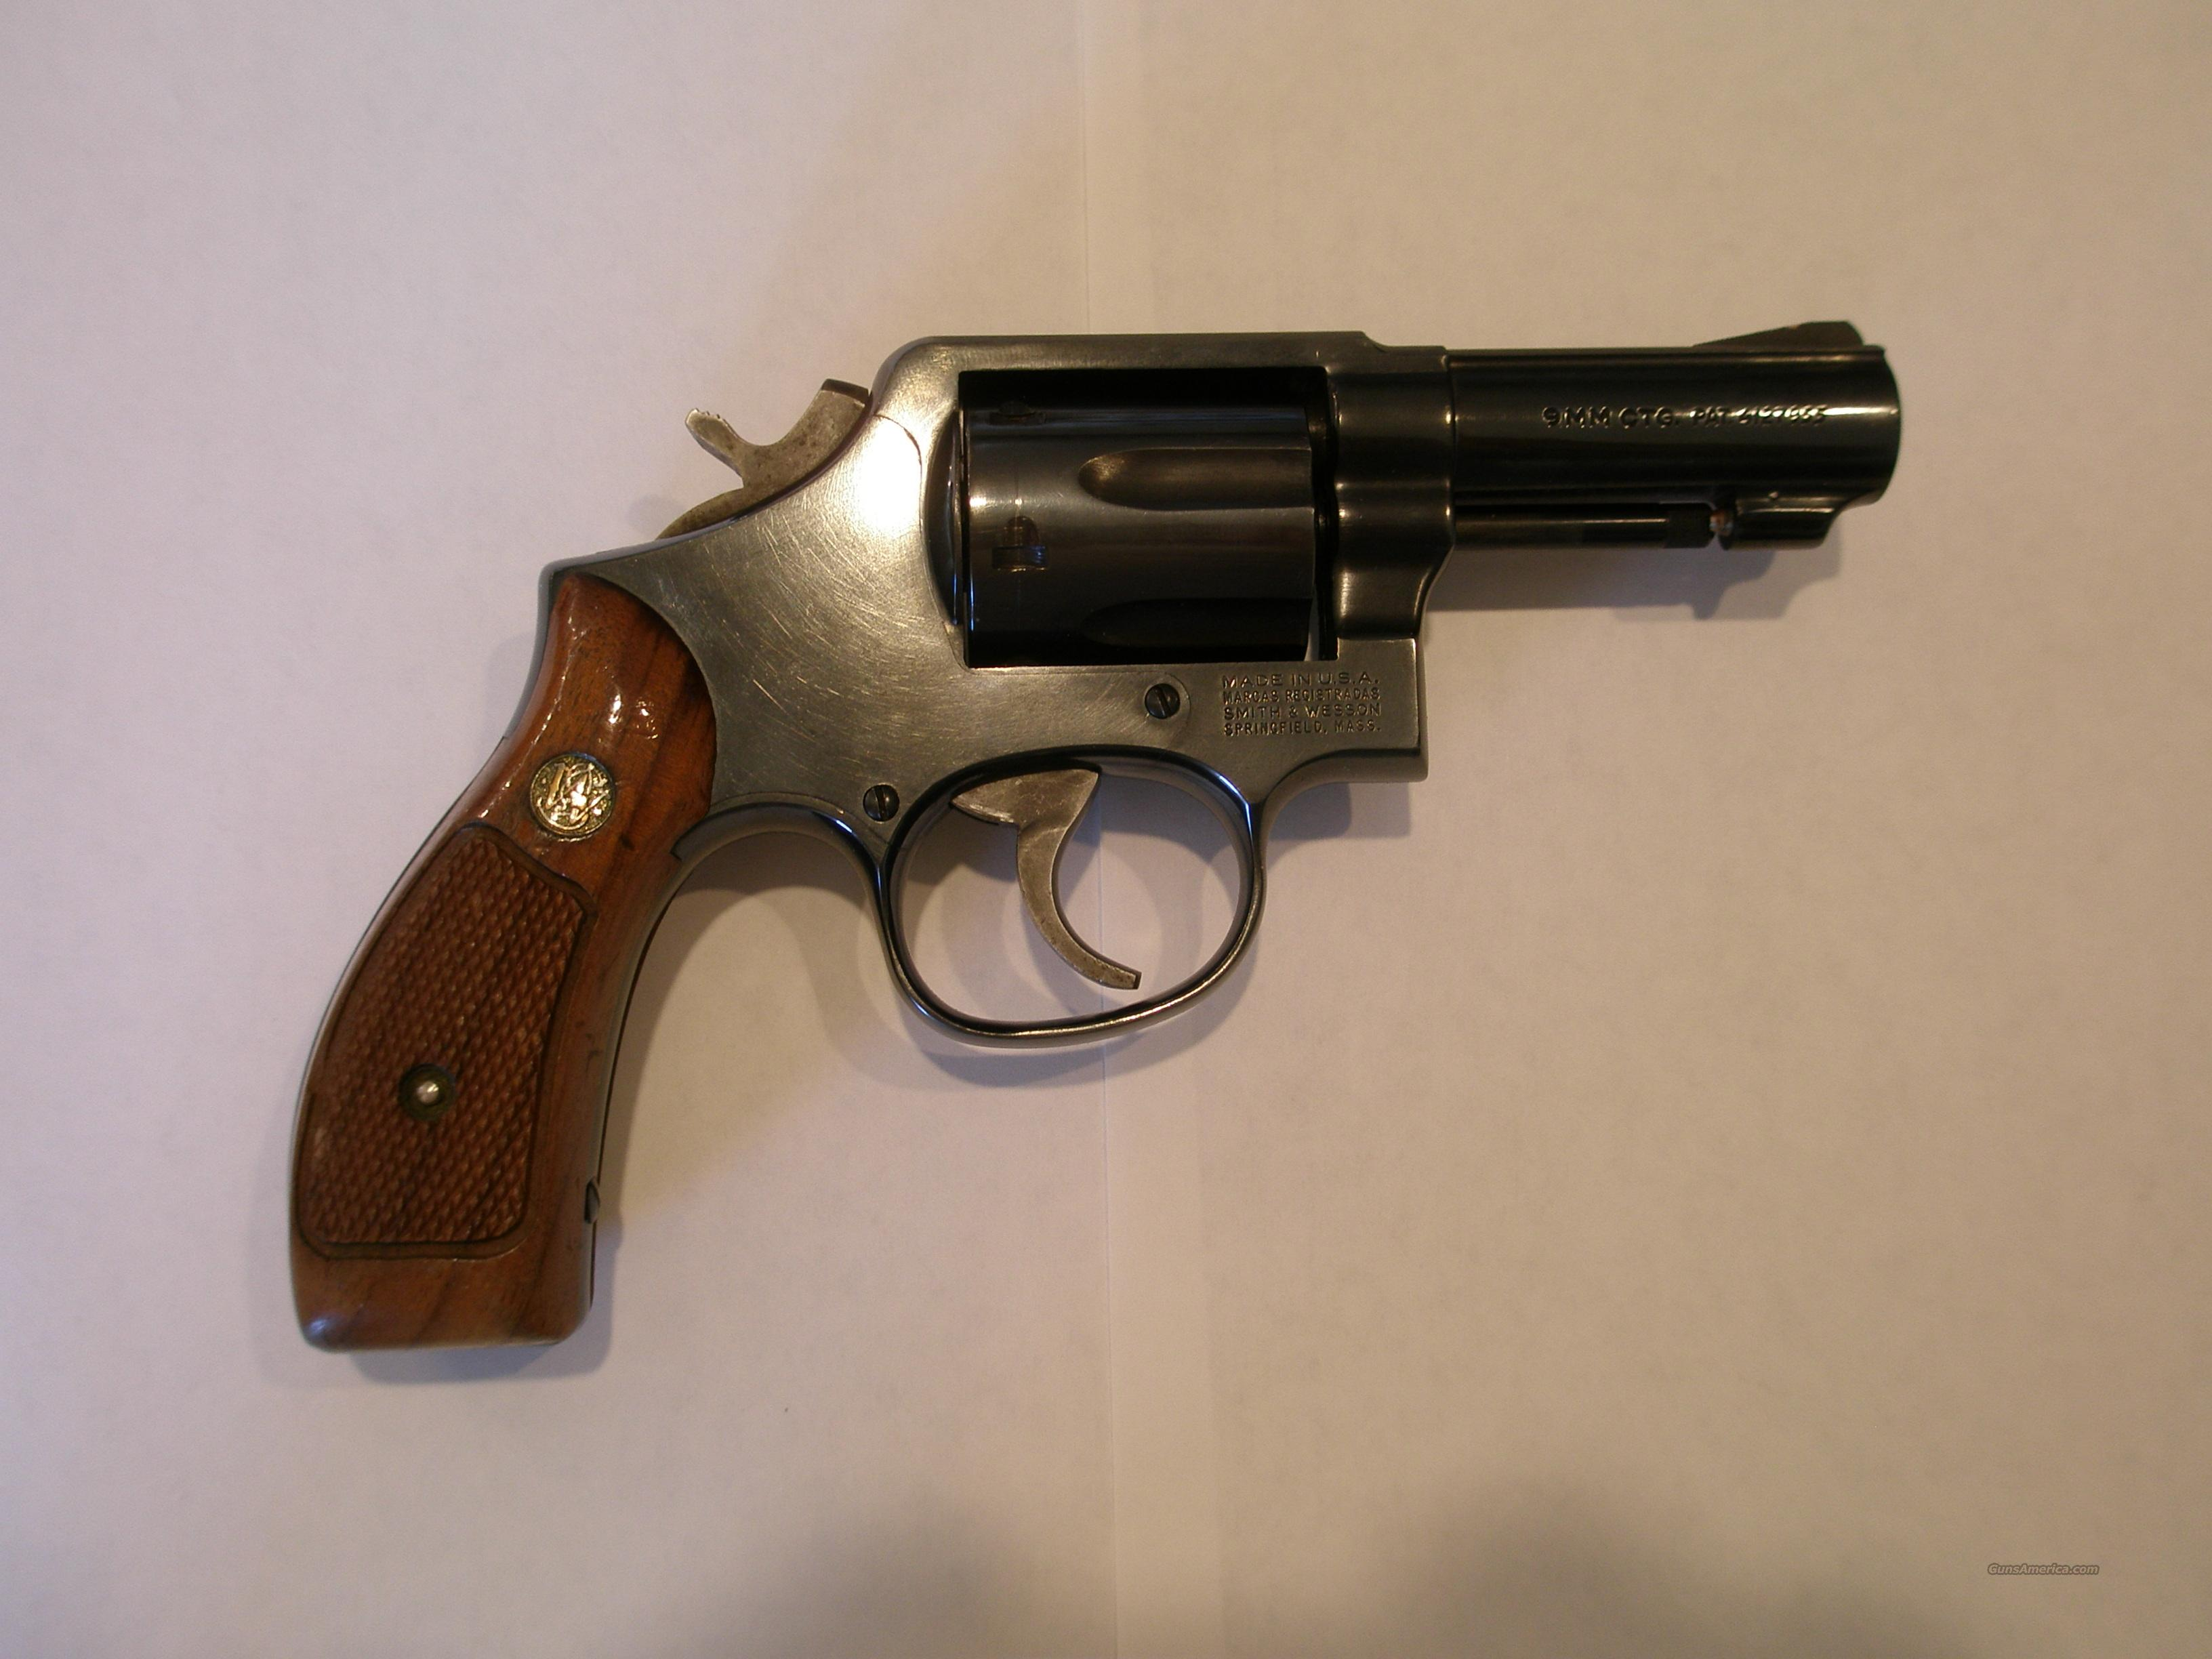 S&W 547 9mm Revolver for sale